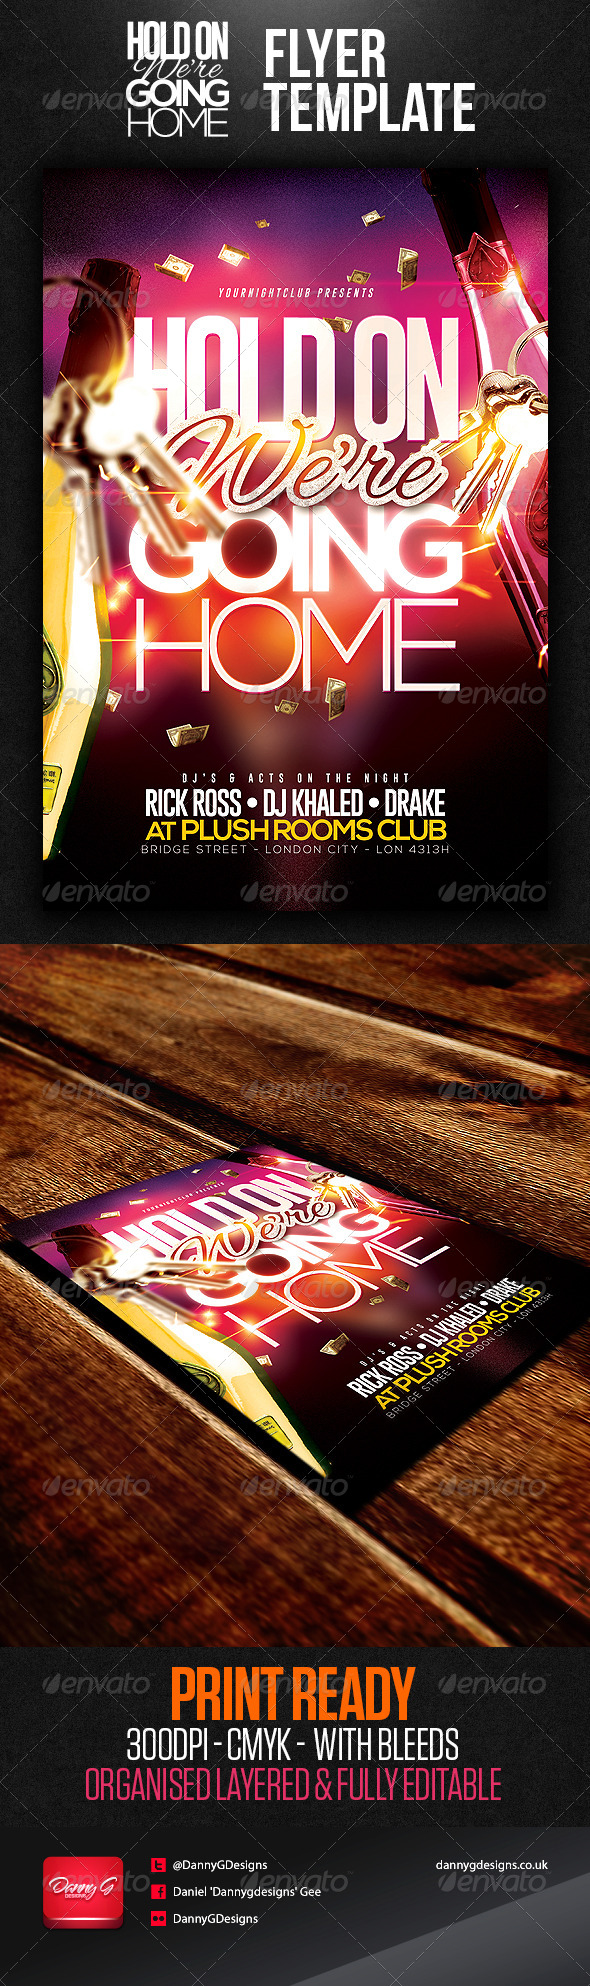 Hold On We're Going Home Flyer Template - Clubs & Parties Events